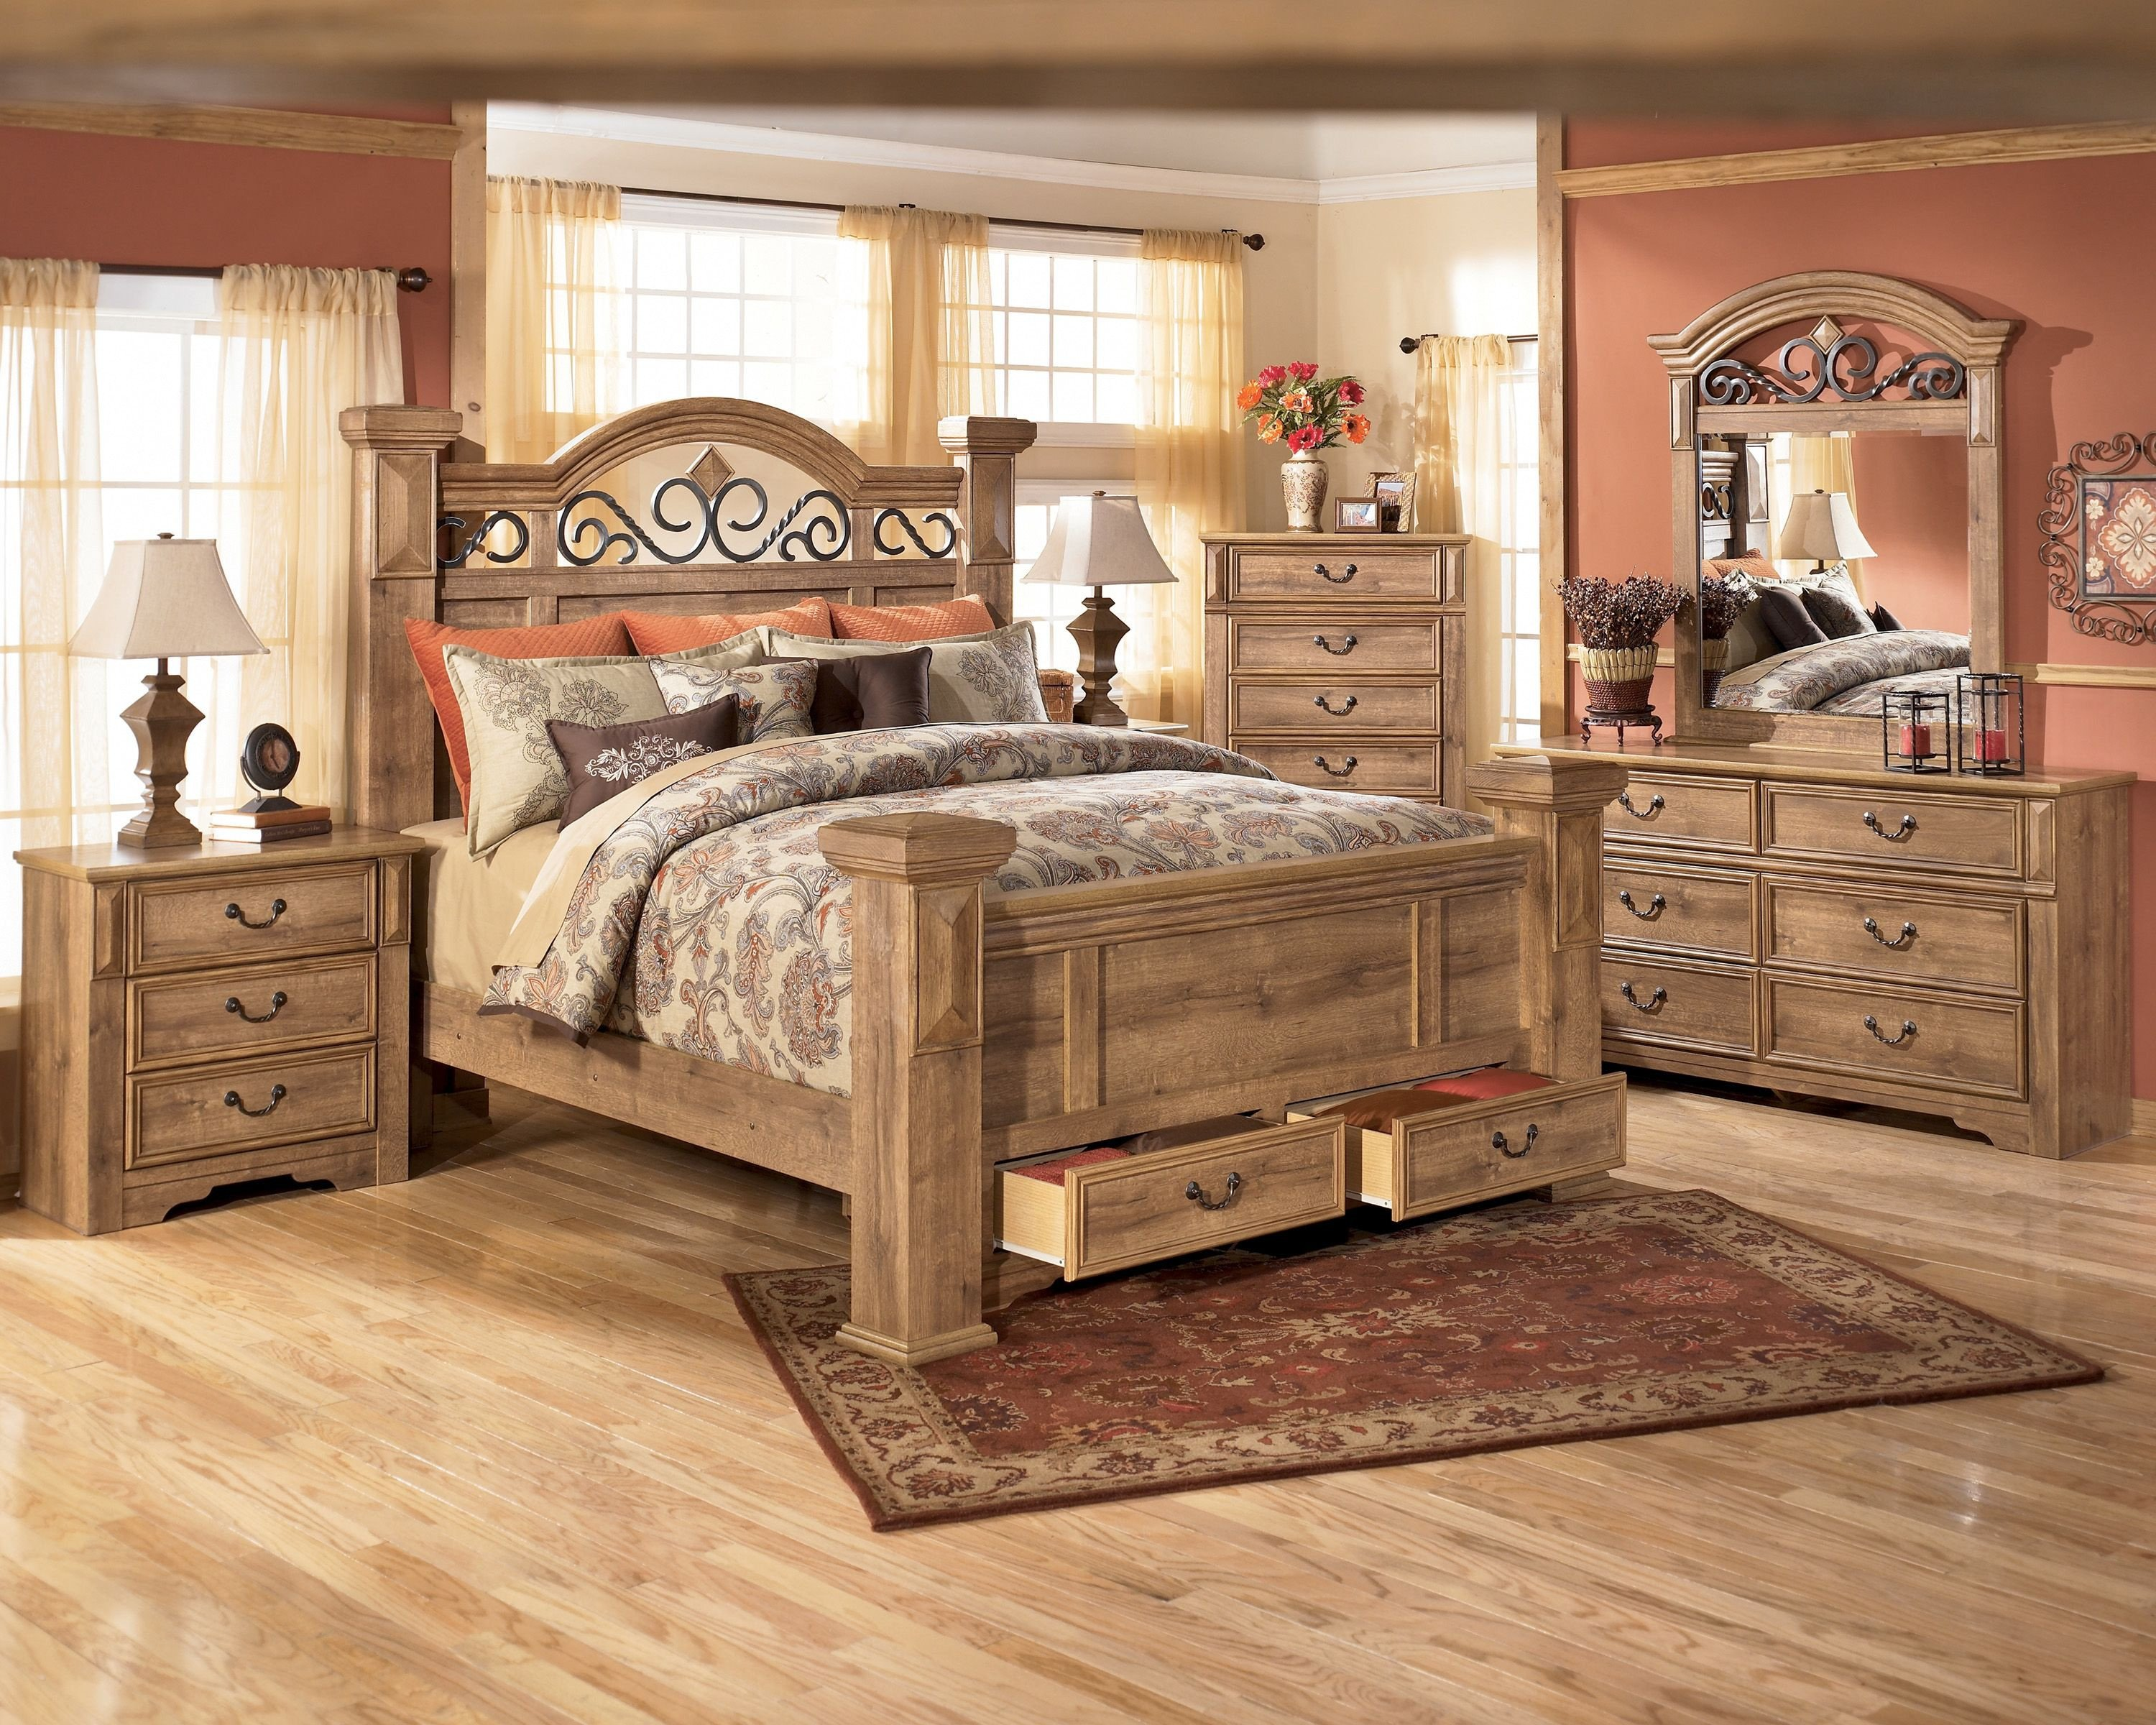 Monte Carlo Bedroom Set Awesome Bobs Furniture Twin Bedroom Sets